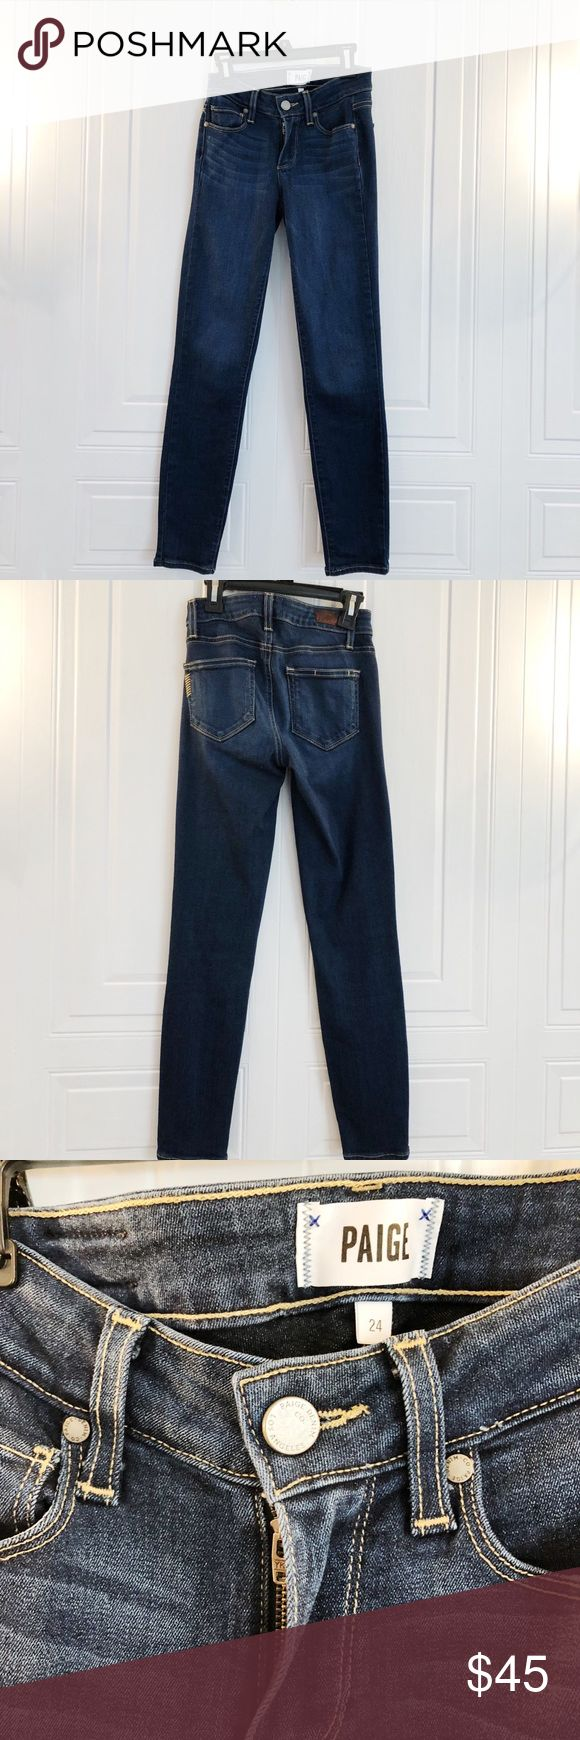 🔥SALE🔥Paige Jeggings Mid-rise, waist 24. Full-leg length for 5'5 woman. Pockets in front and back. From Paige. Never worn. Skinny fit. :) Paige Jeans Pants Skinny